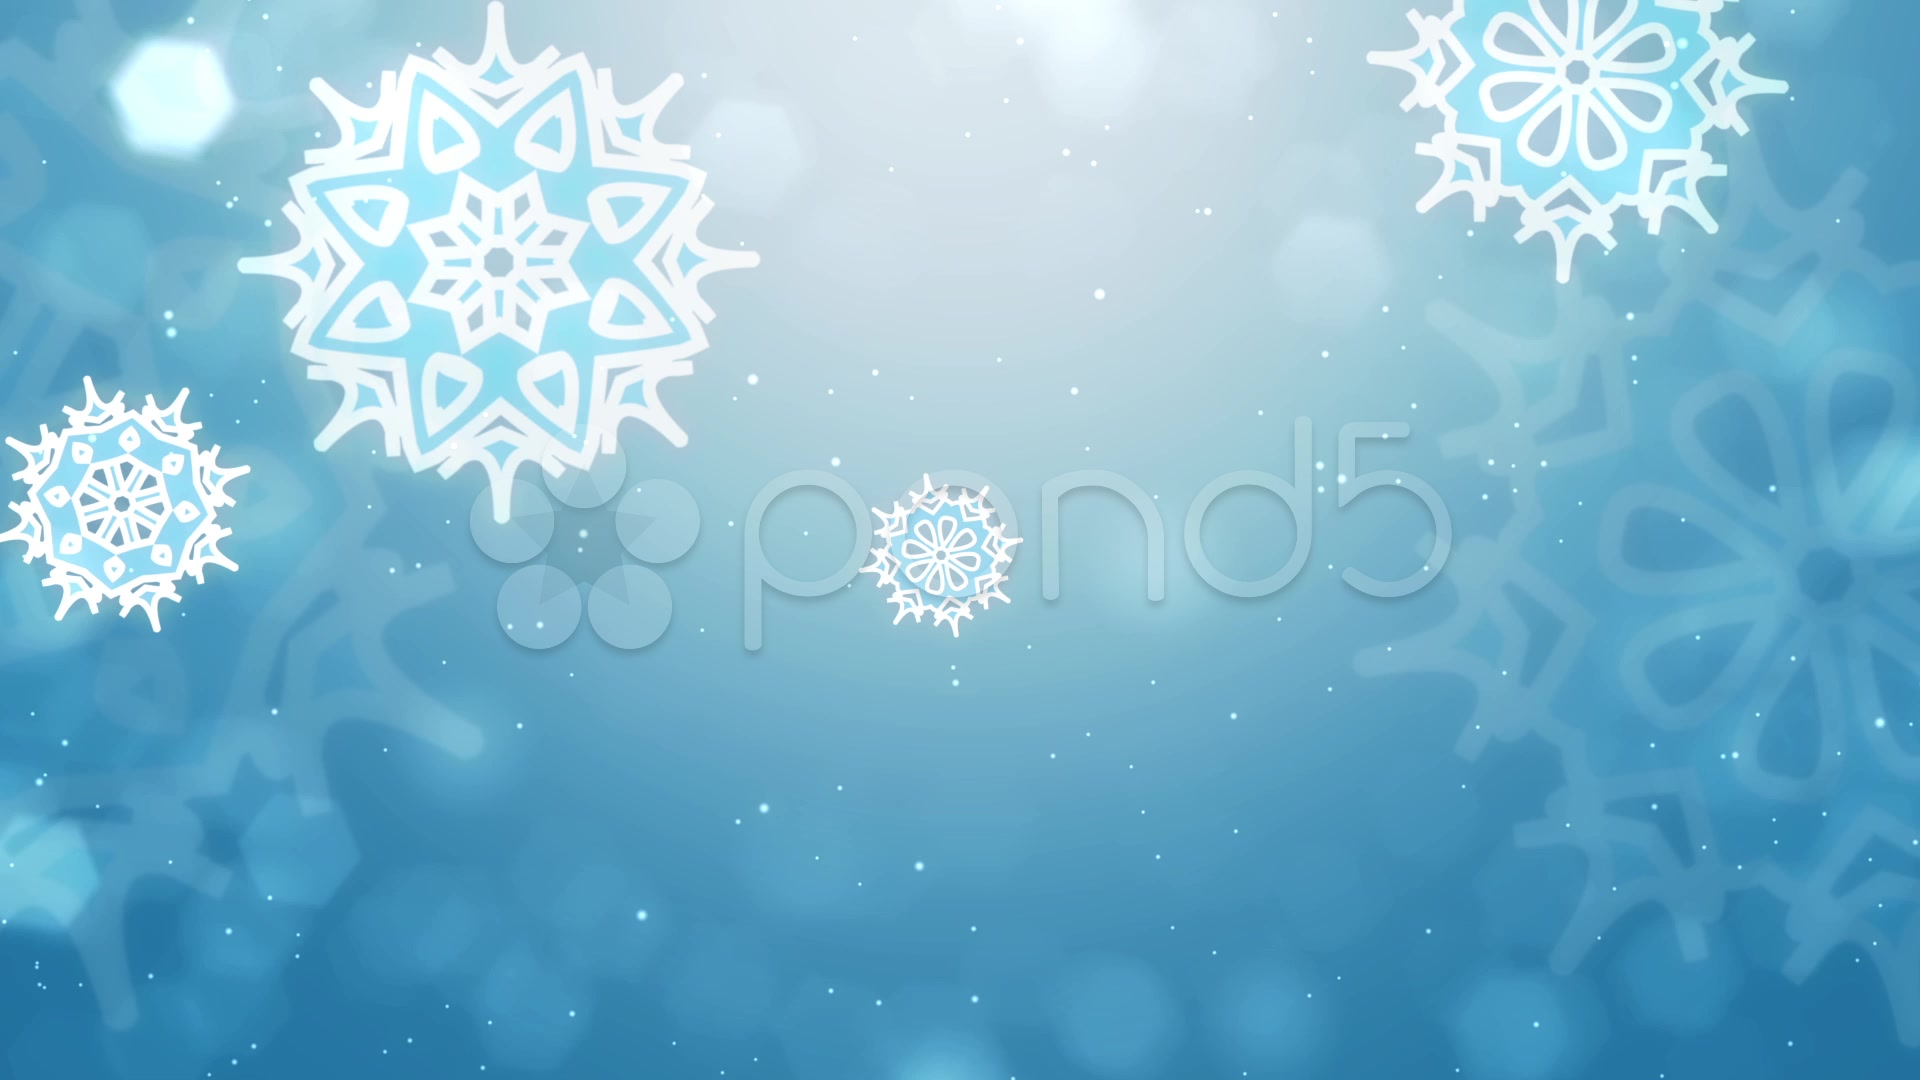 After Effects Project - Pond5 Christmas Flakes and Lower Third 33898369